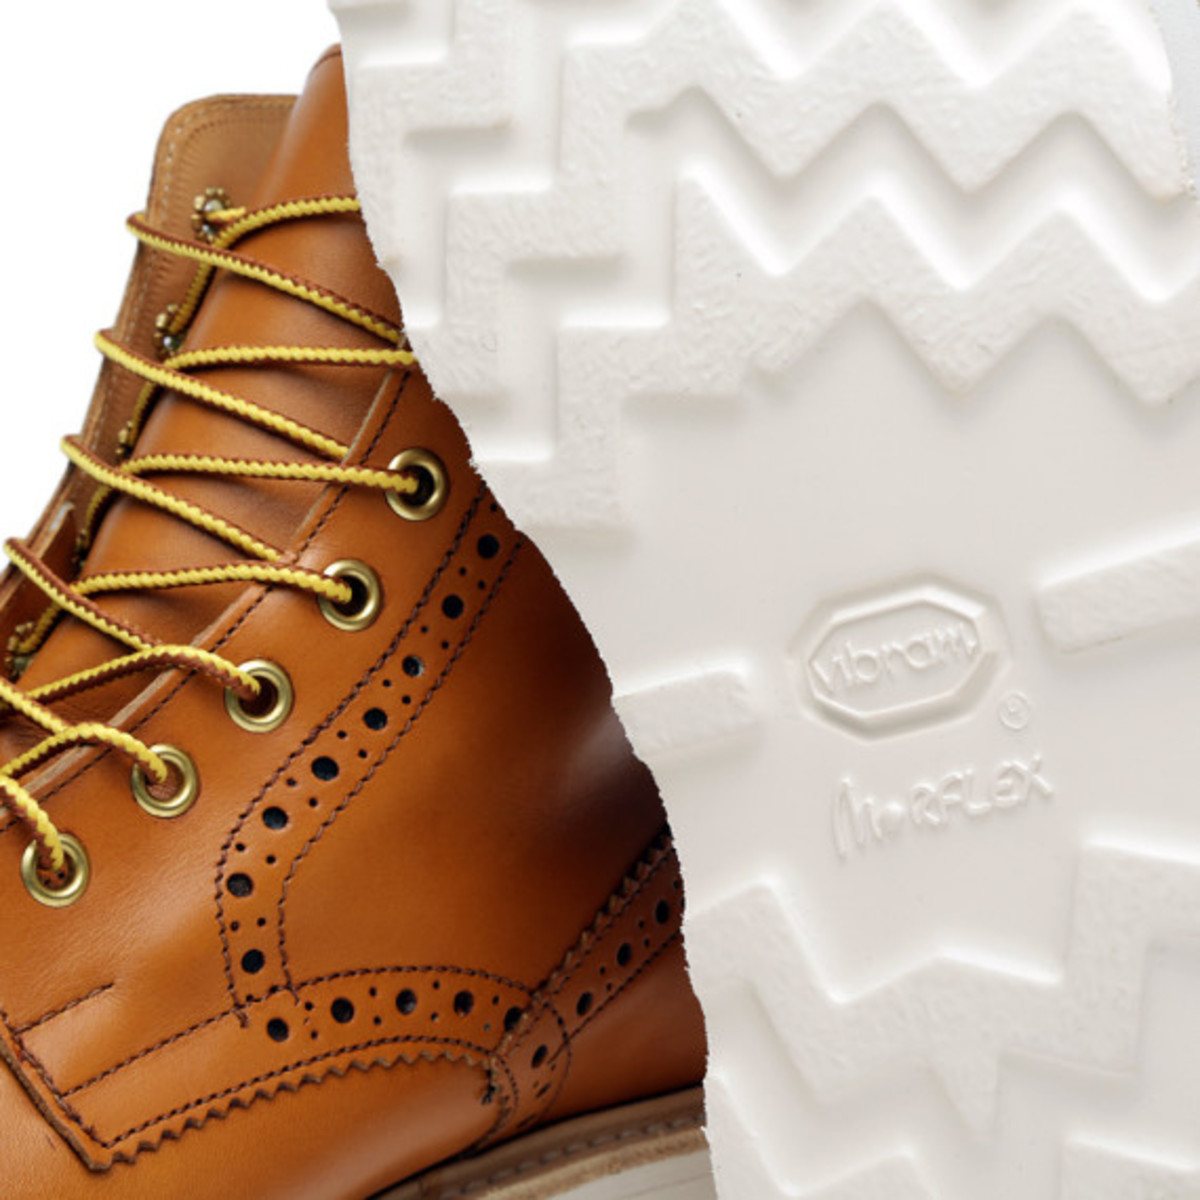 end-trickers-vibram-sole-stow-boot-28